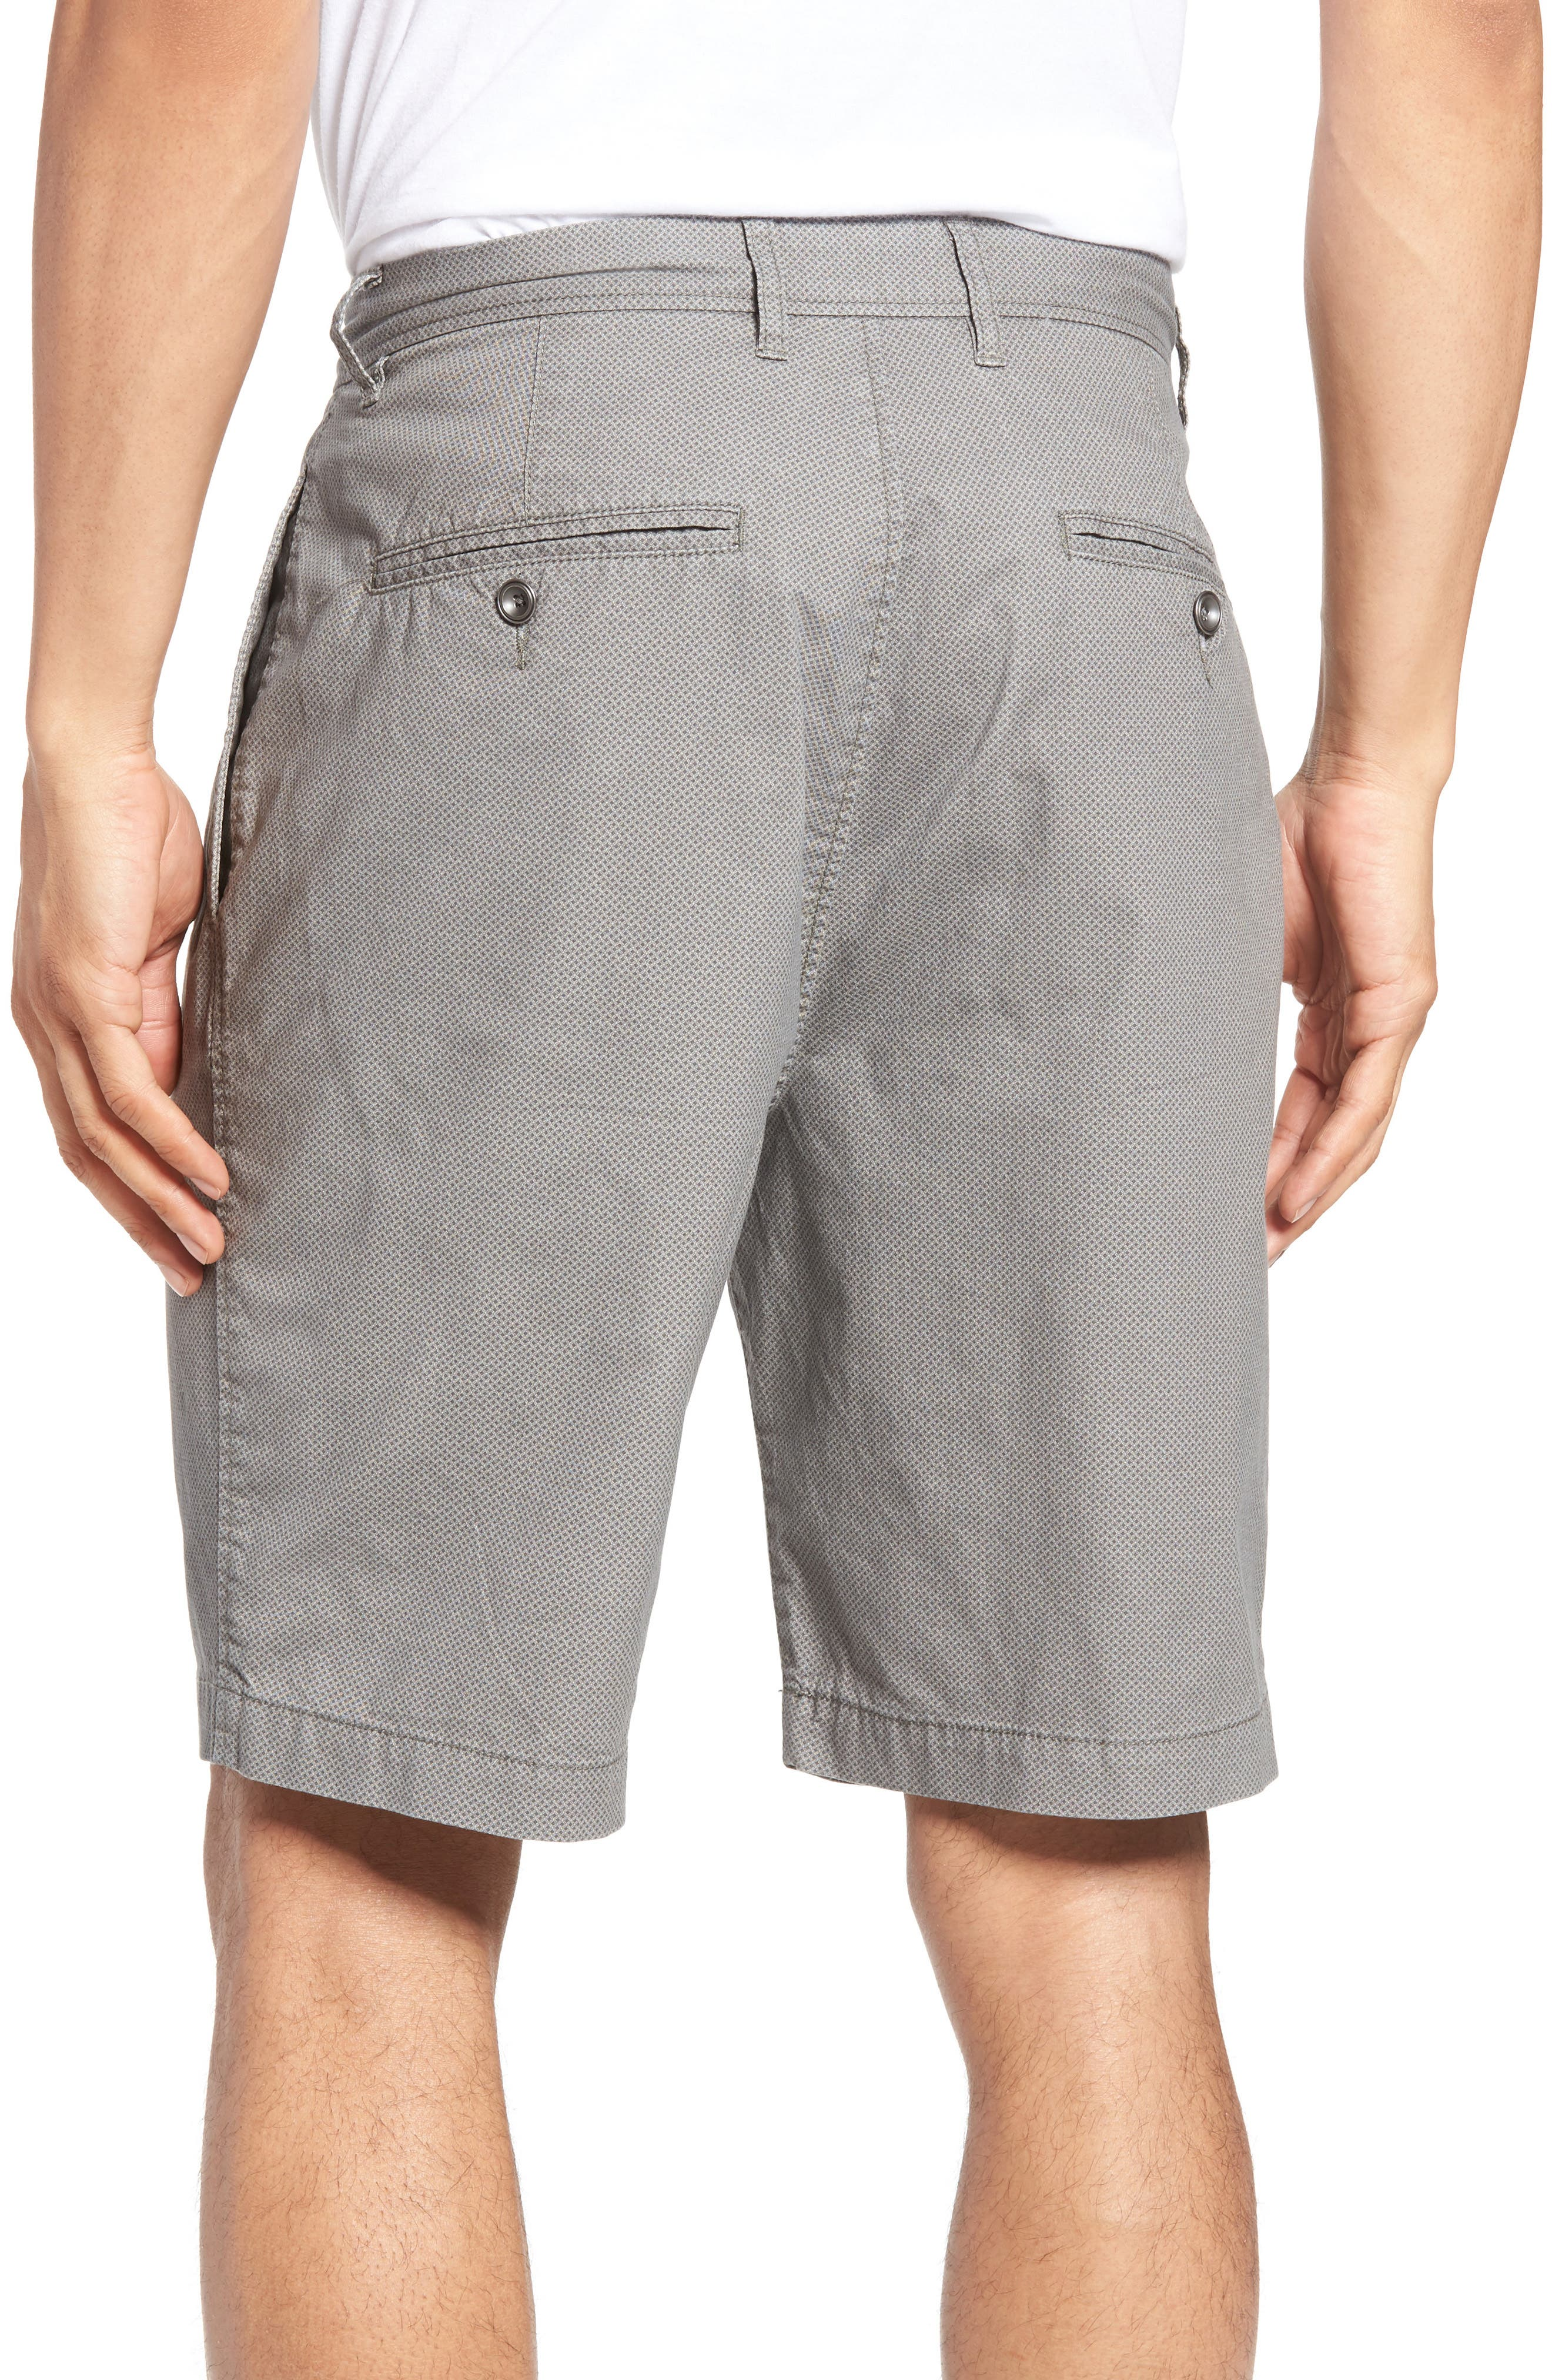 Benneydale Shorts,                             Alternate thumbnail 2, color,                             039